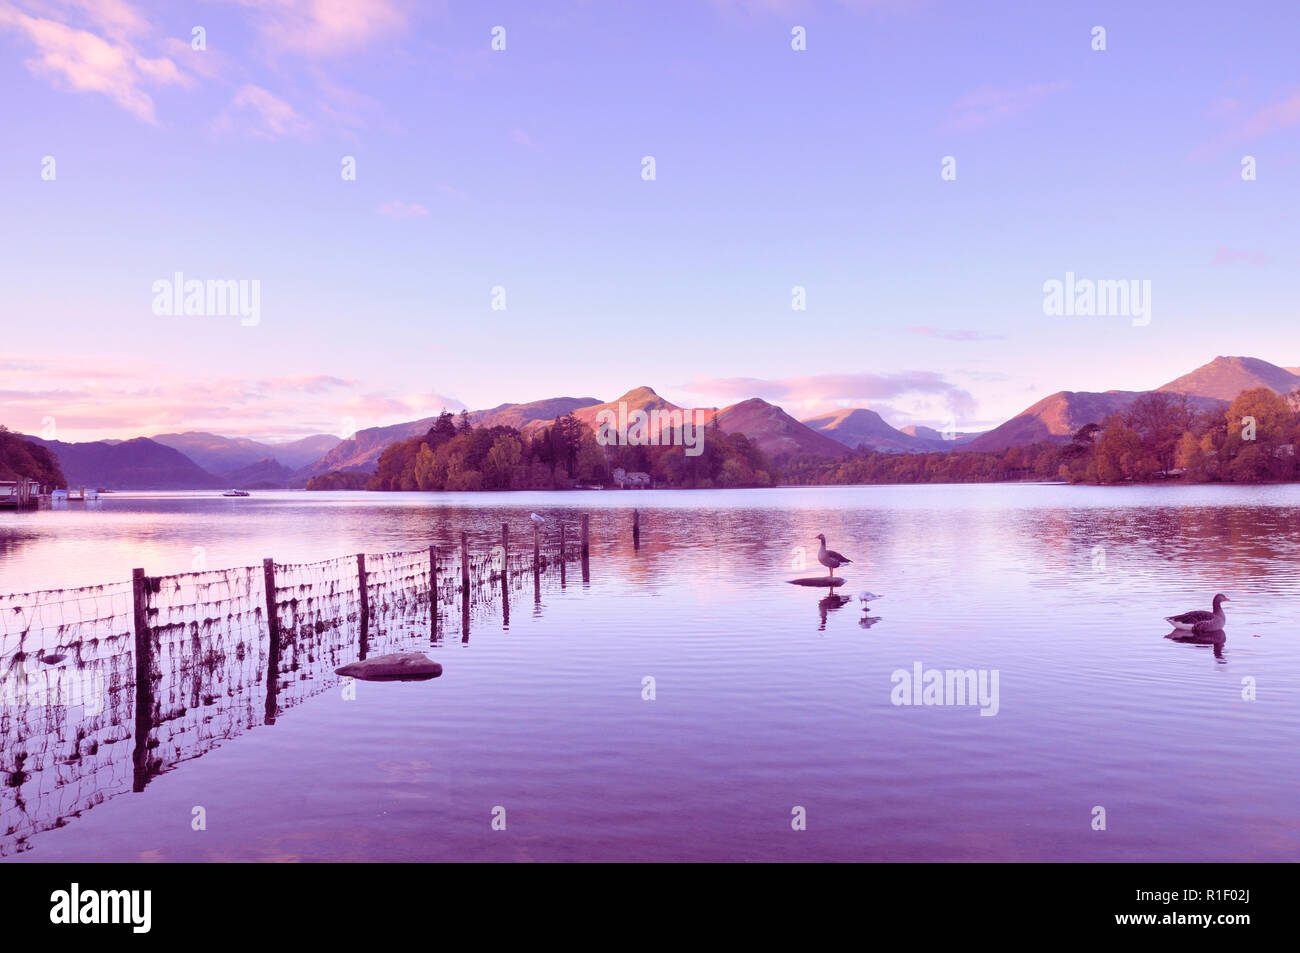 A beautiful sunrise at Derwentwater looking towards Derwent Isle and Catbells, Lake District, England, UK - Stock Image